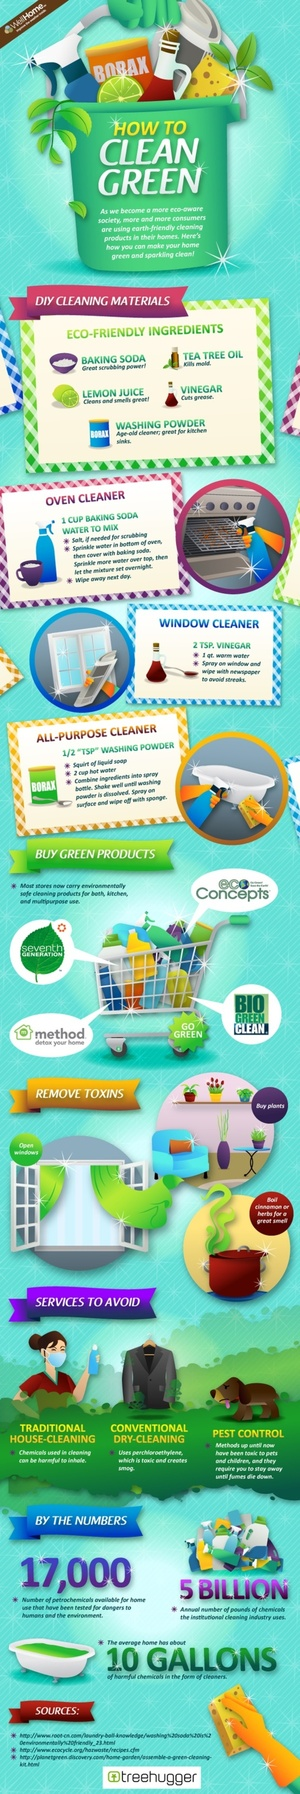 Natural cleaning infographic @ DIY Home Design